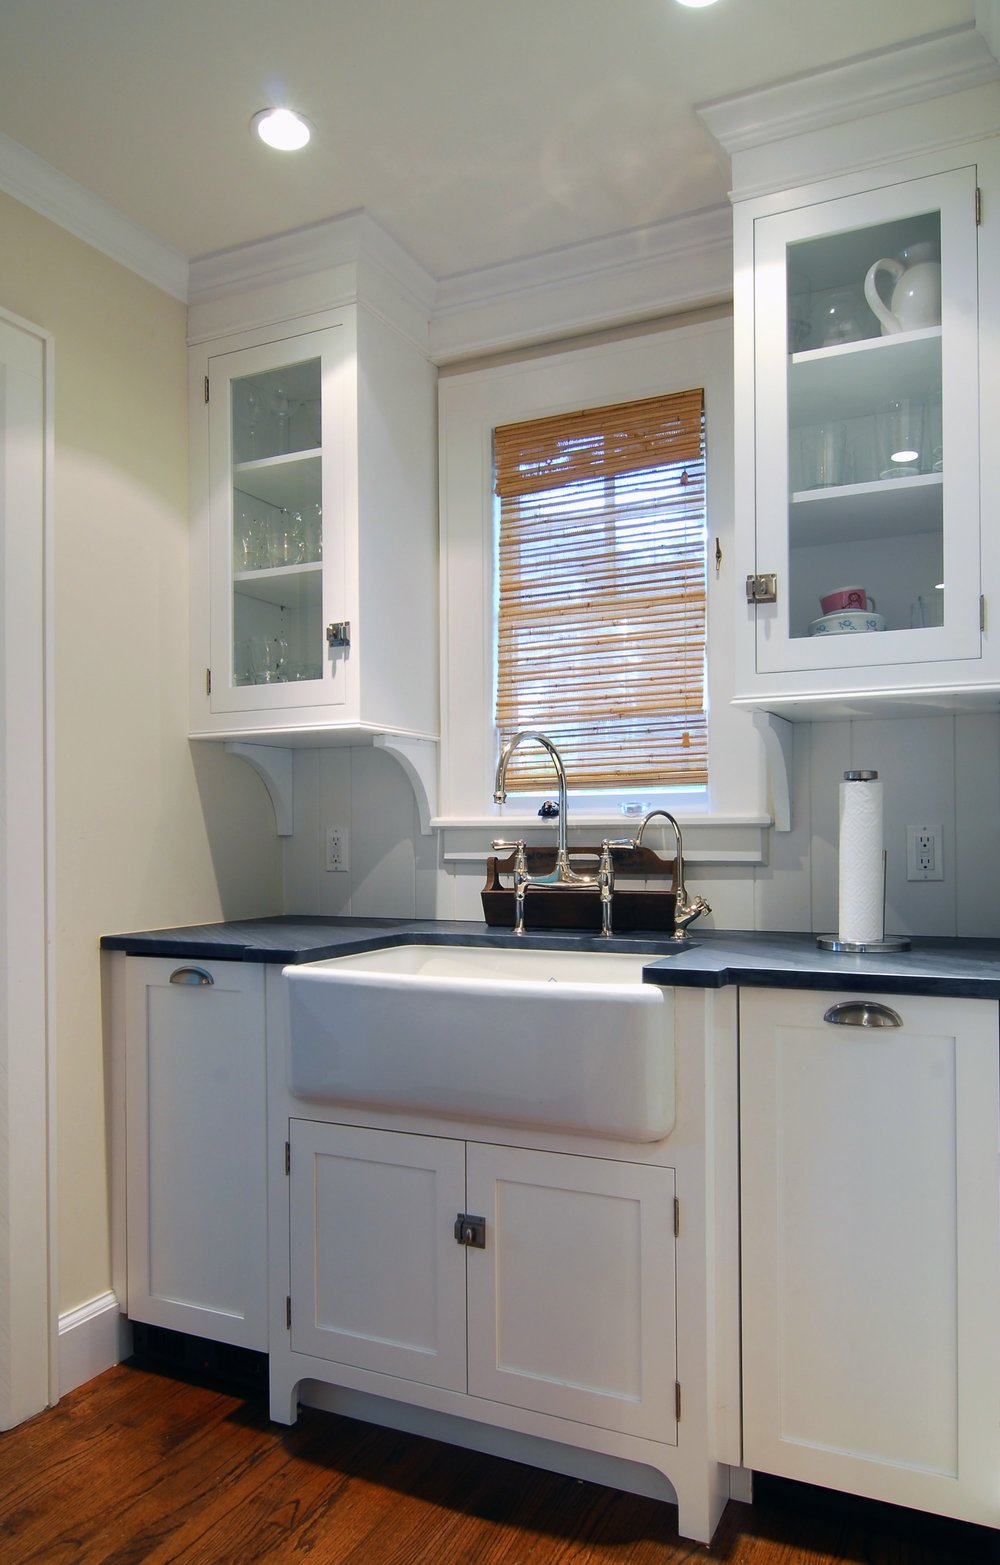 Transitional style kitchen with wash area